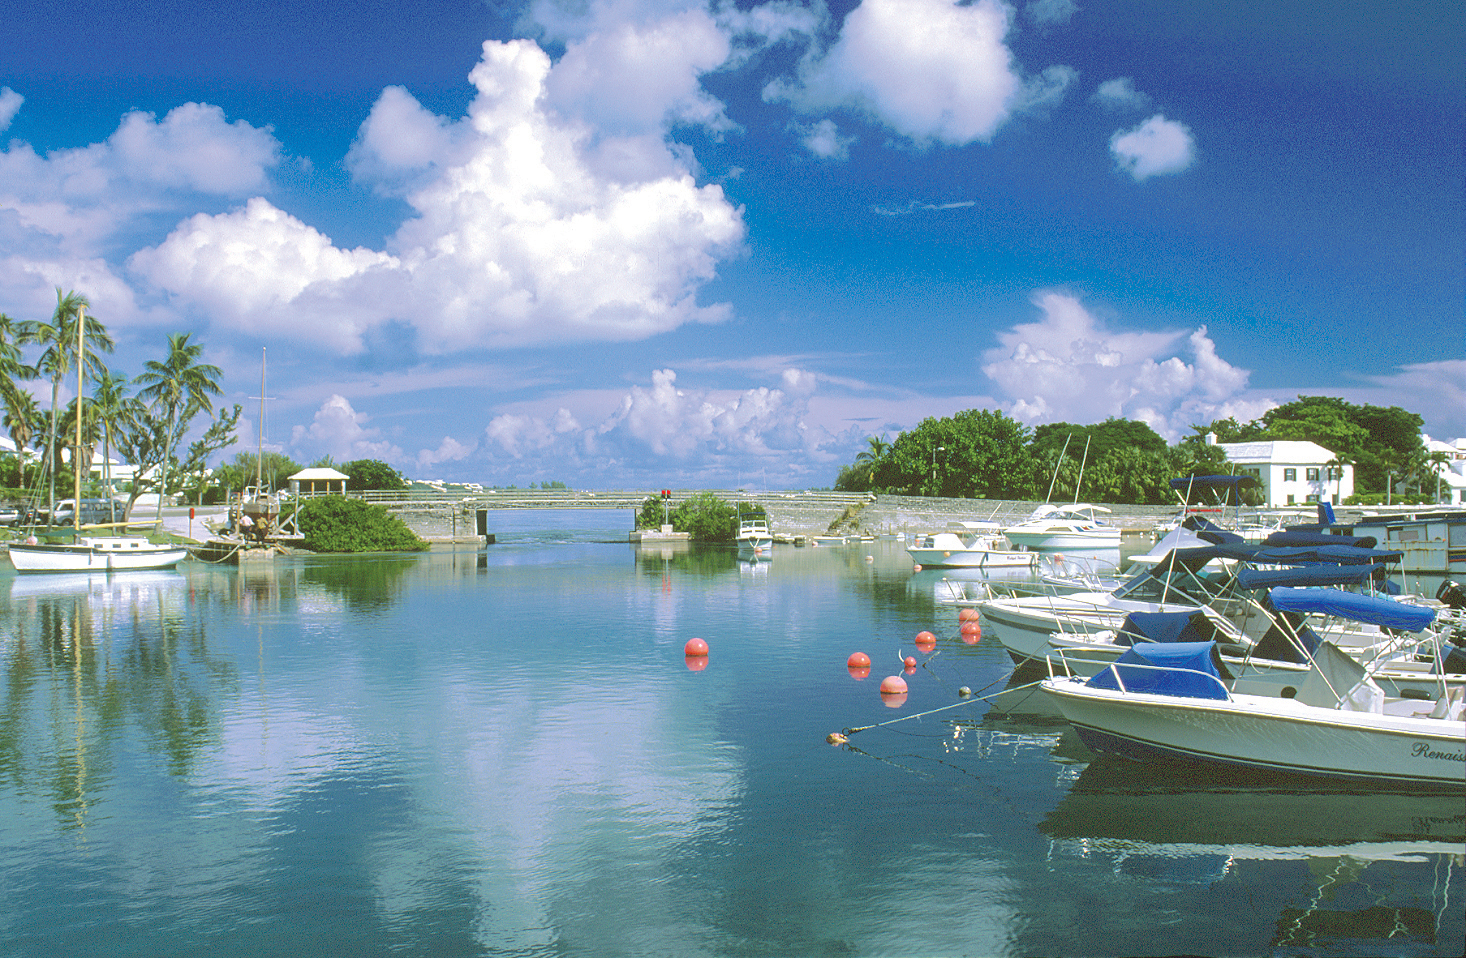 Bermuda is a boating paradise